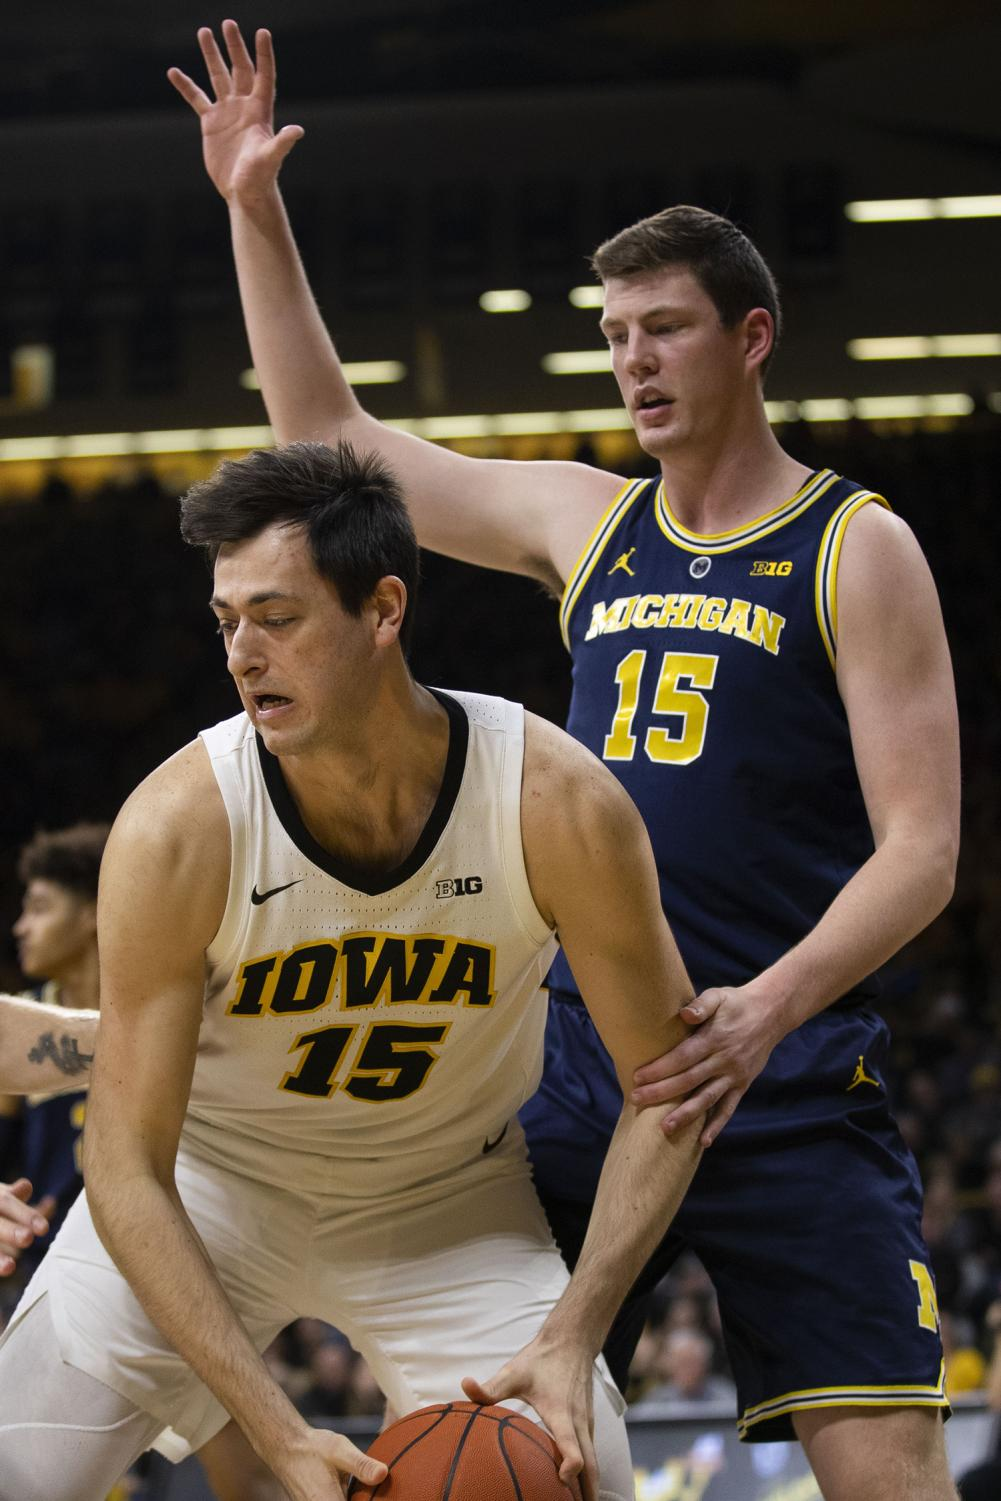 Iowa+forward+Ryan+Kriener+guards+the+ball+from+Michigan+center+Jon+Teske+during+the+Iowa%2FMichigan+men%27s+basketball+game+at+Carver-Hawkeye+Arena+on+Friday%2C+February+1%2C+2019.+The+Hawkeyes+took+down+the+No.+5+ranked+Wolverines%2C+74-59.